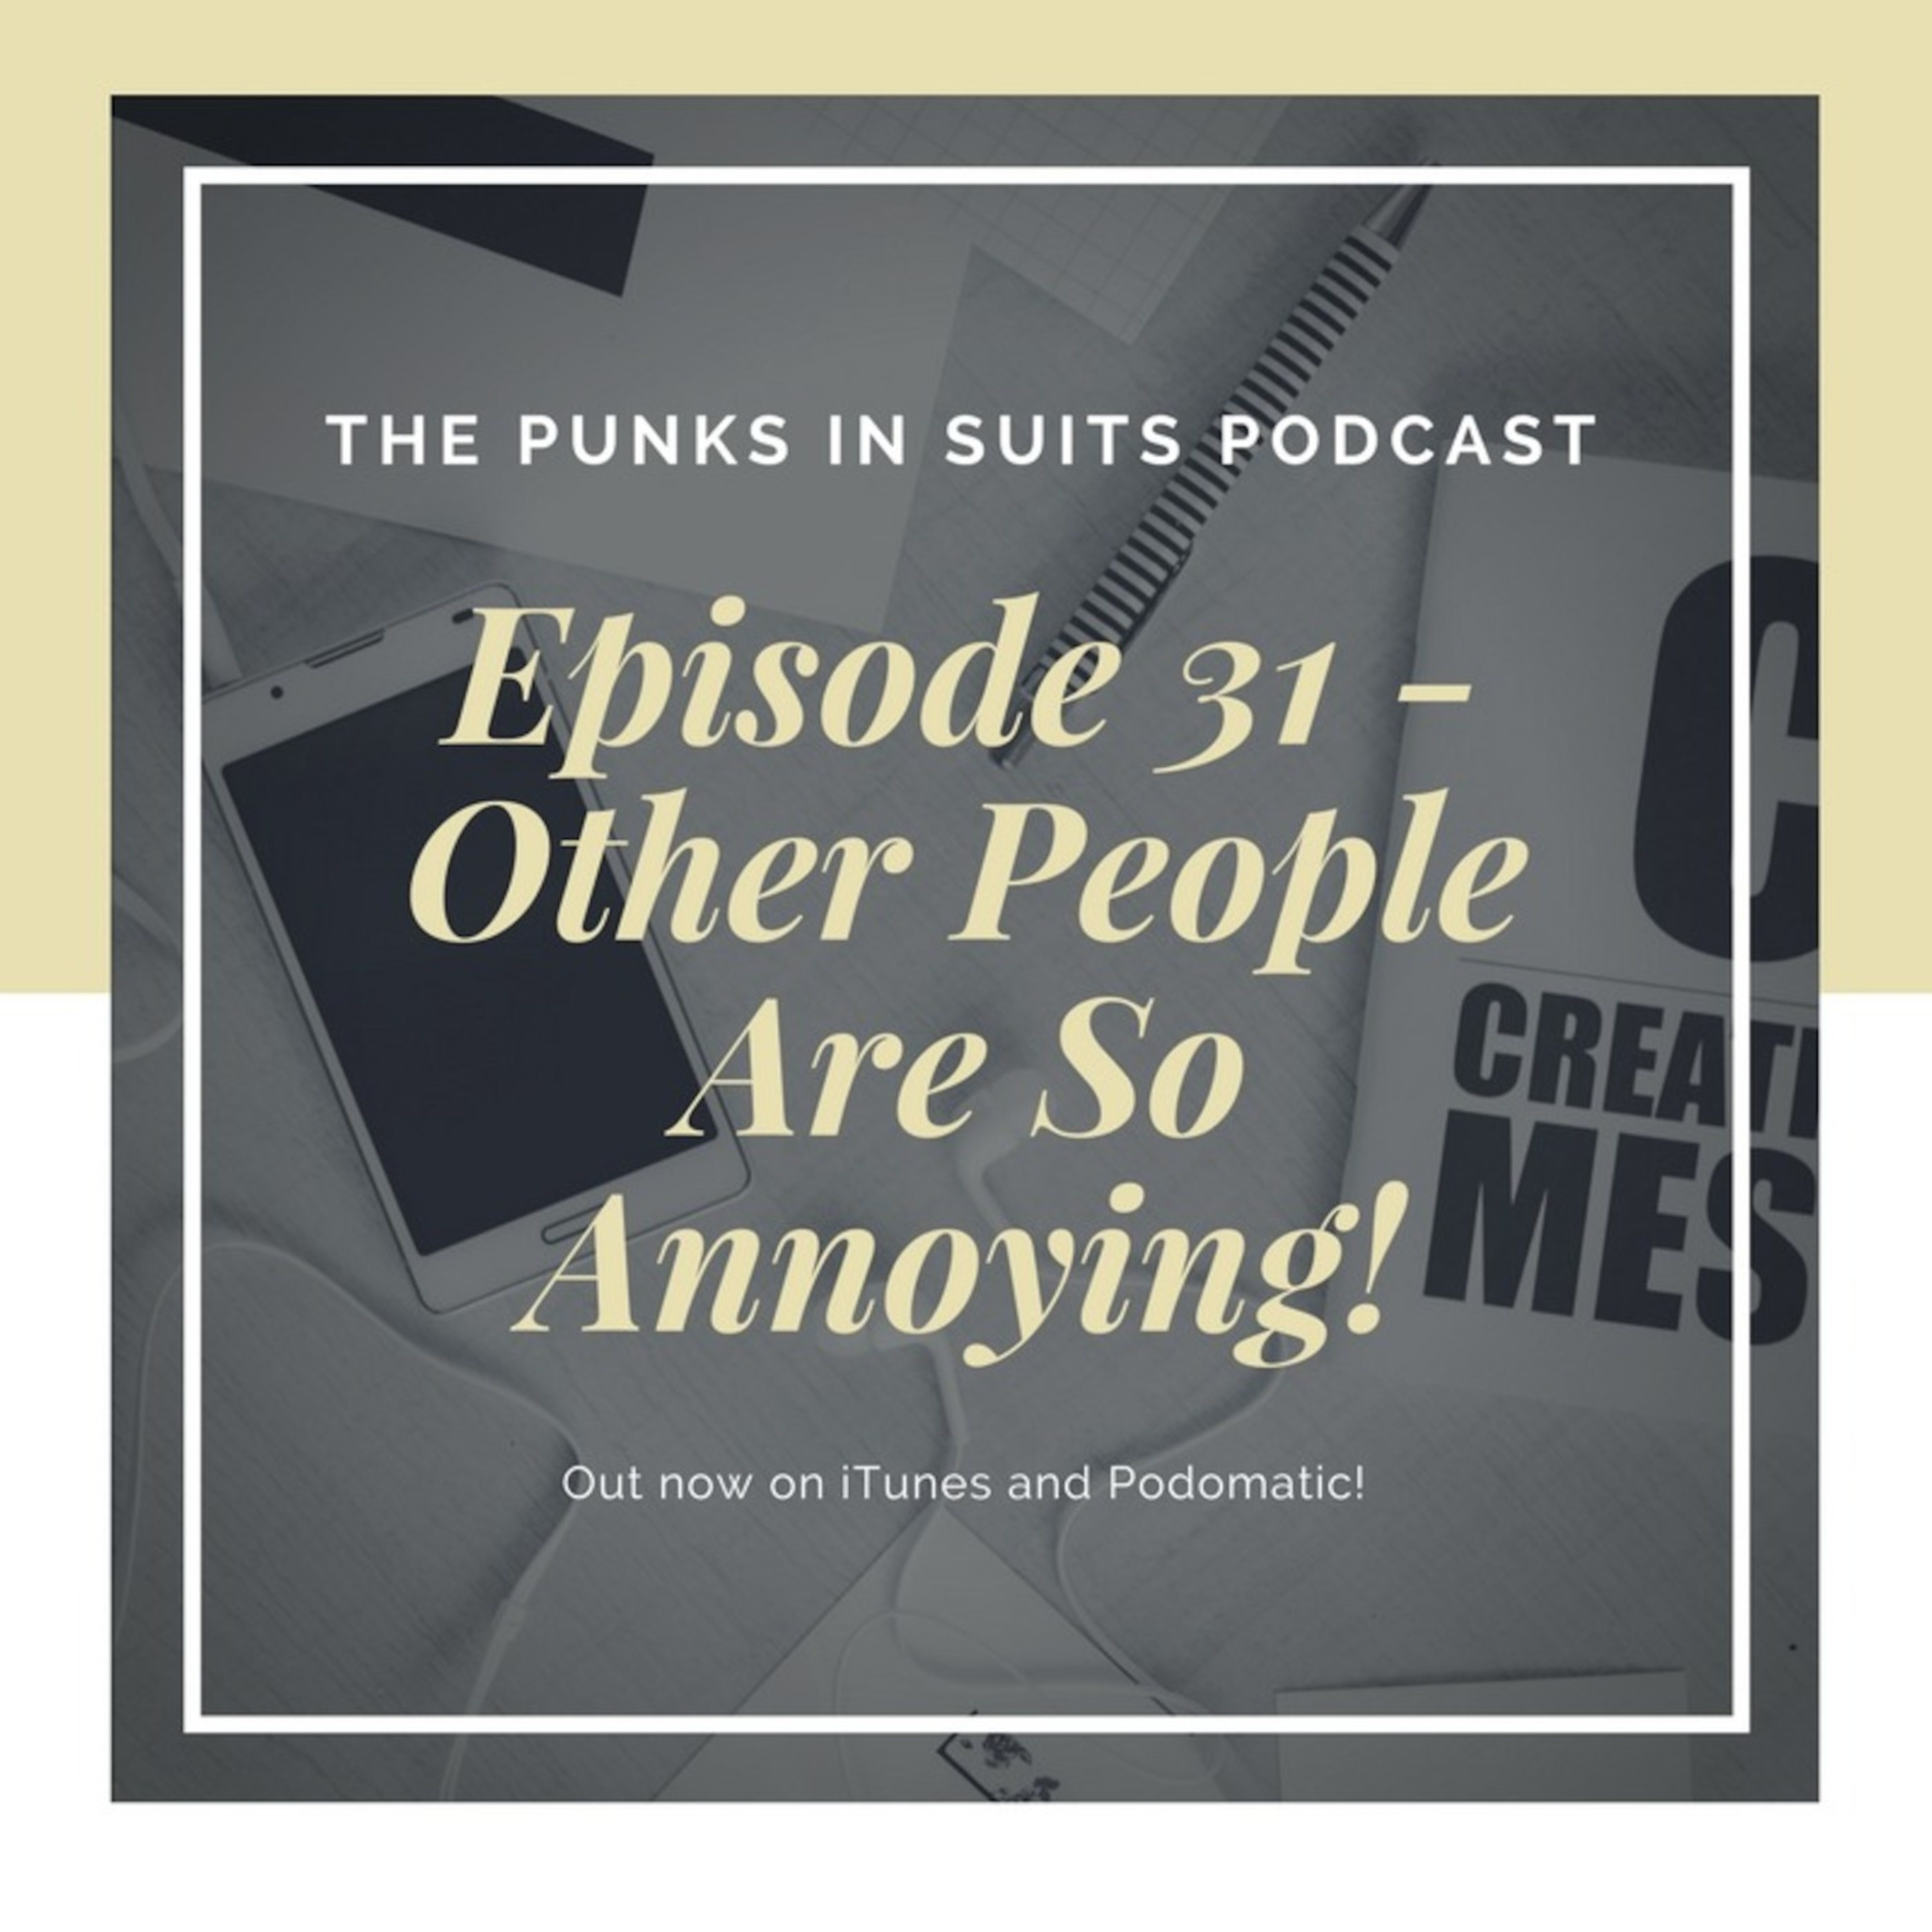 Episode 31: Other People Are So Annoying!